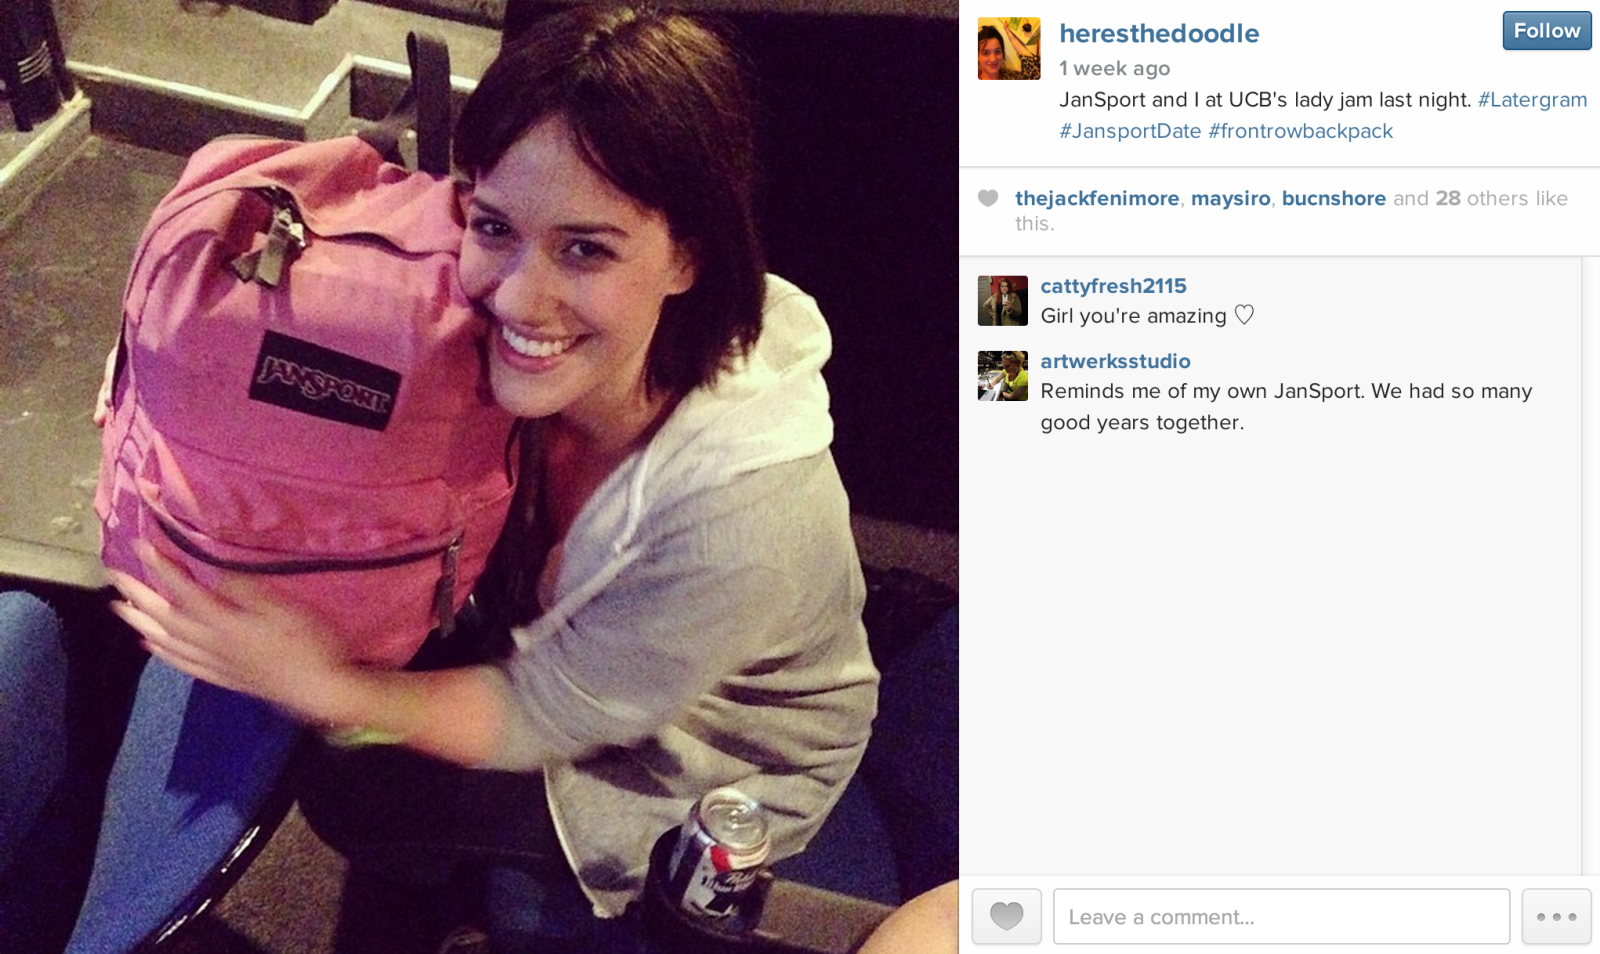 Woman dating her backpack